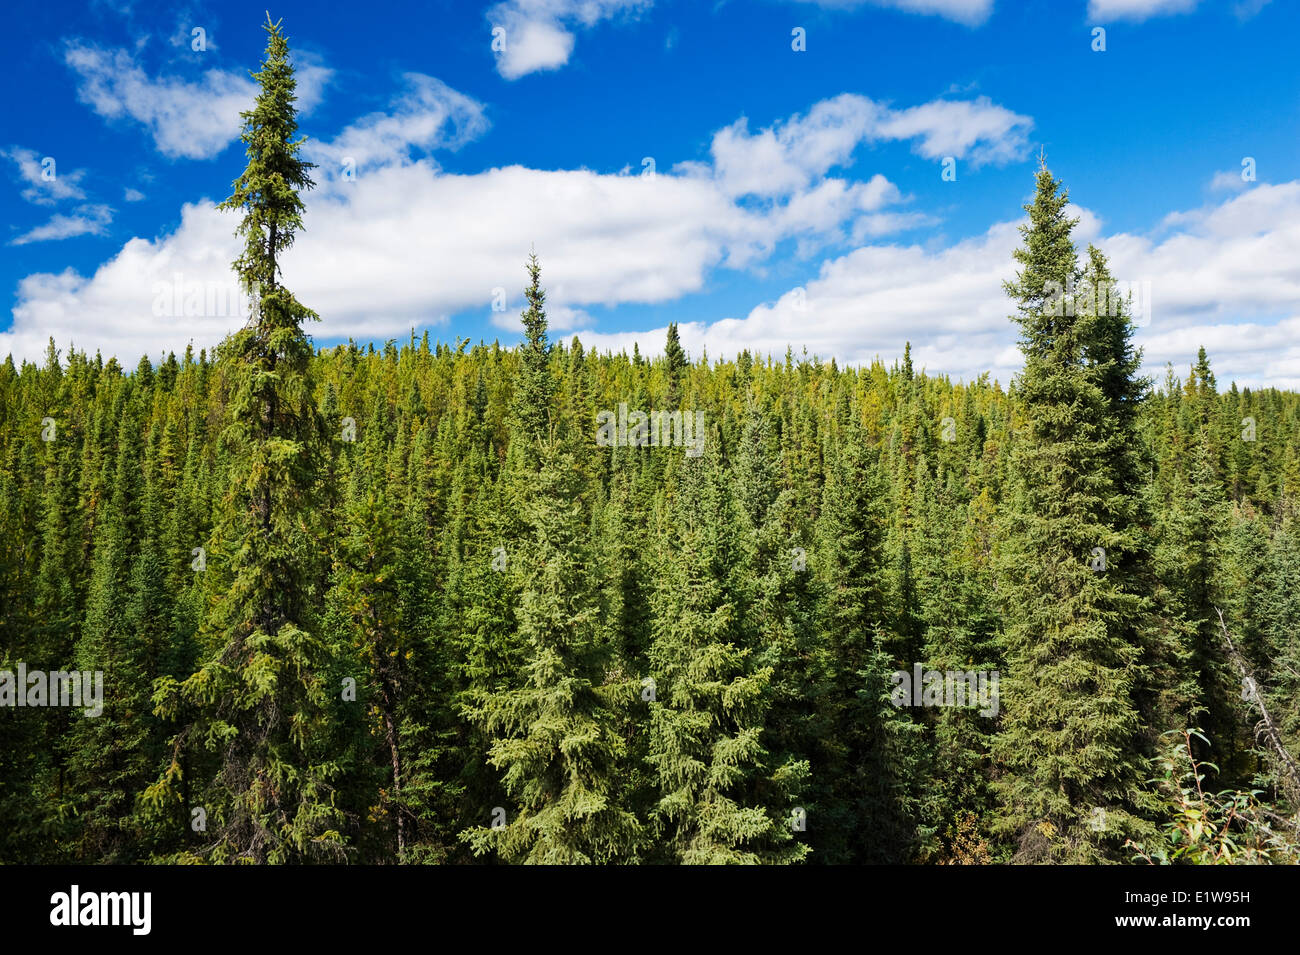 Forest, north of La Ronge, Saskatchewan, Canada - Stock Image